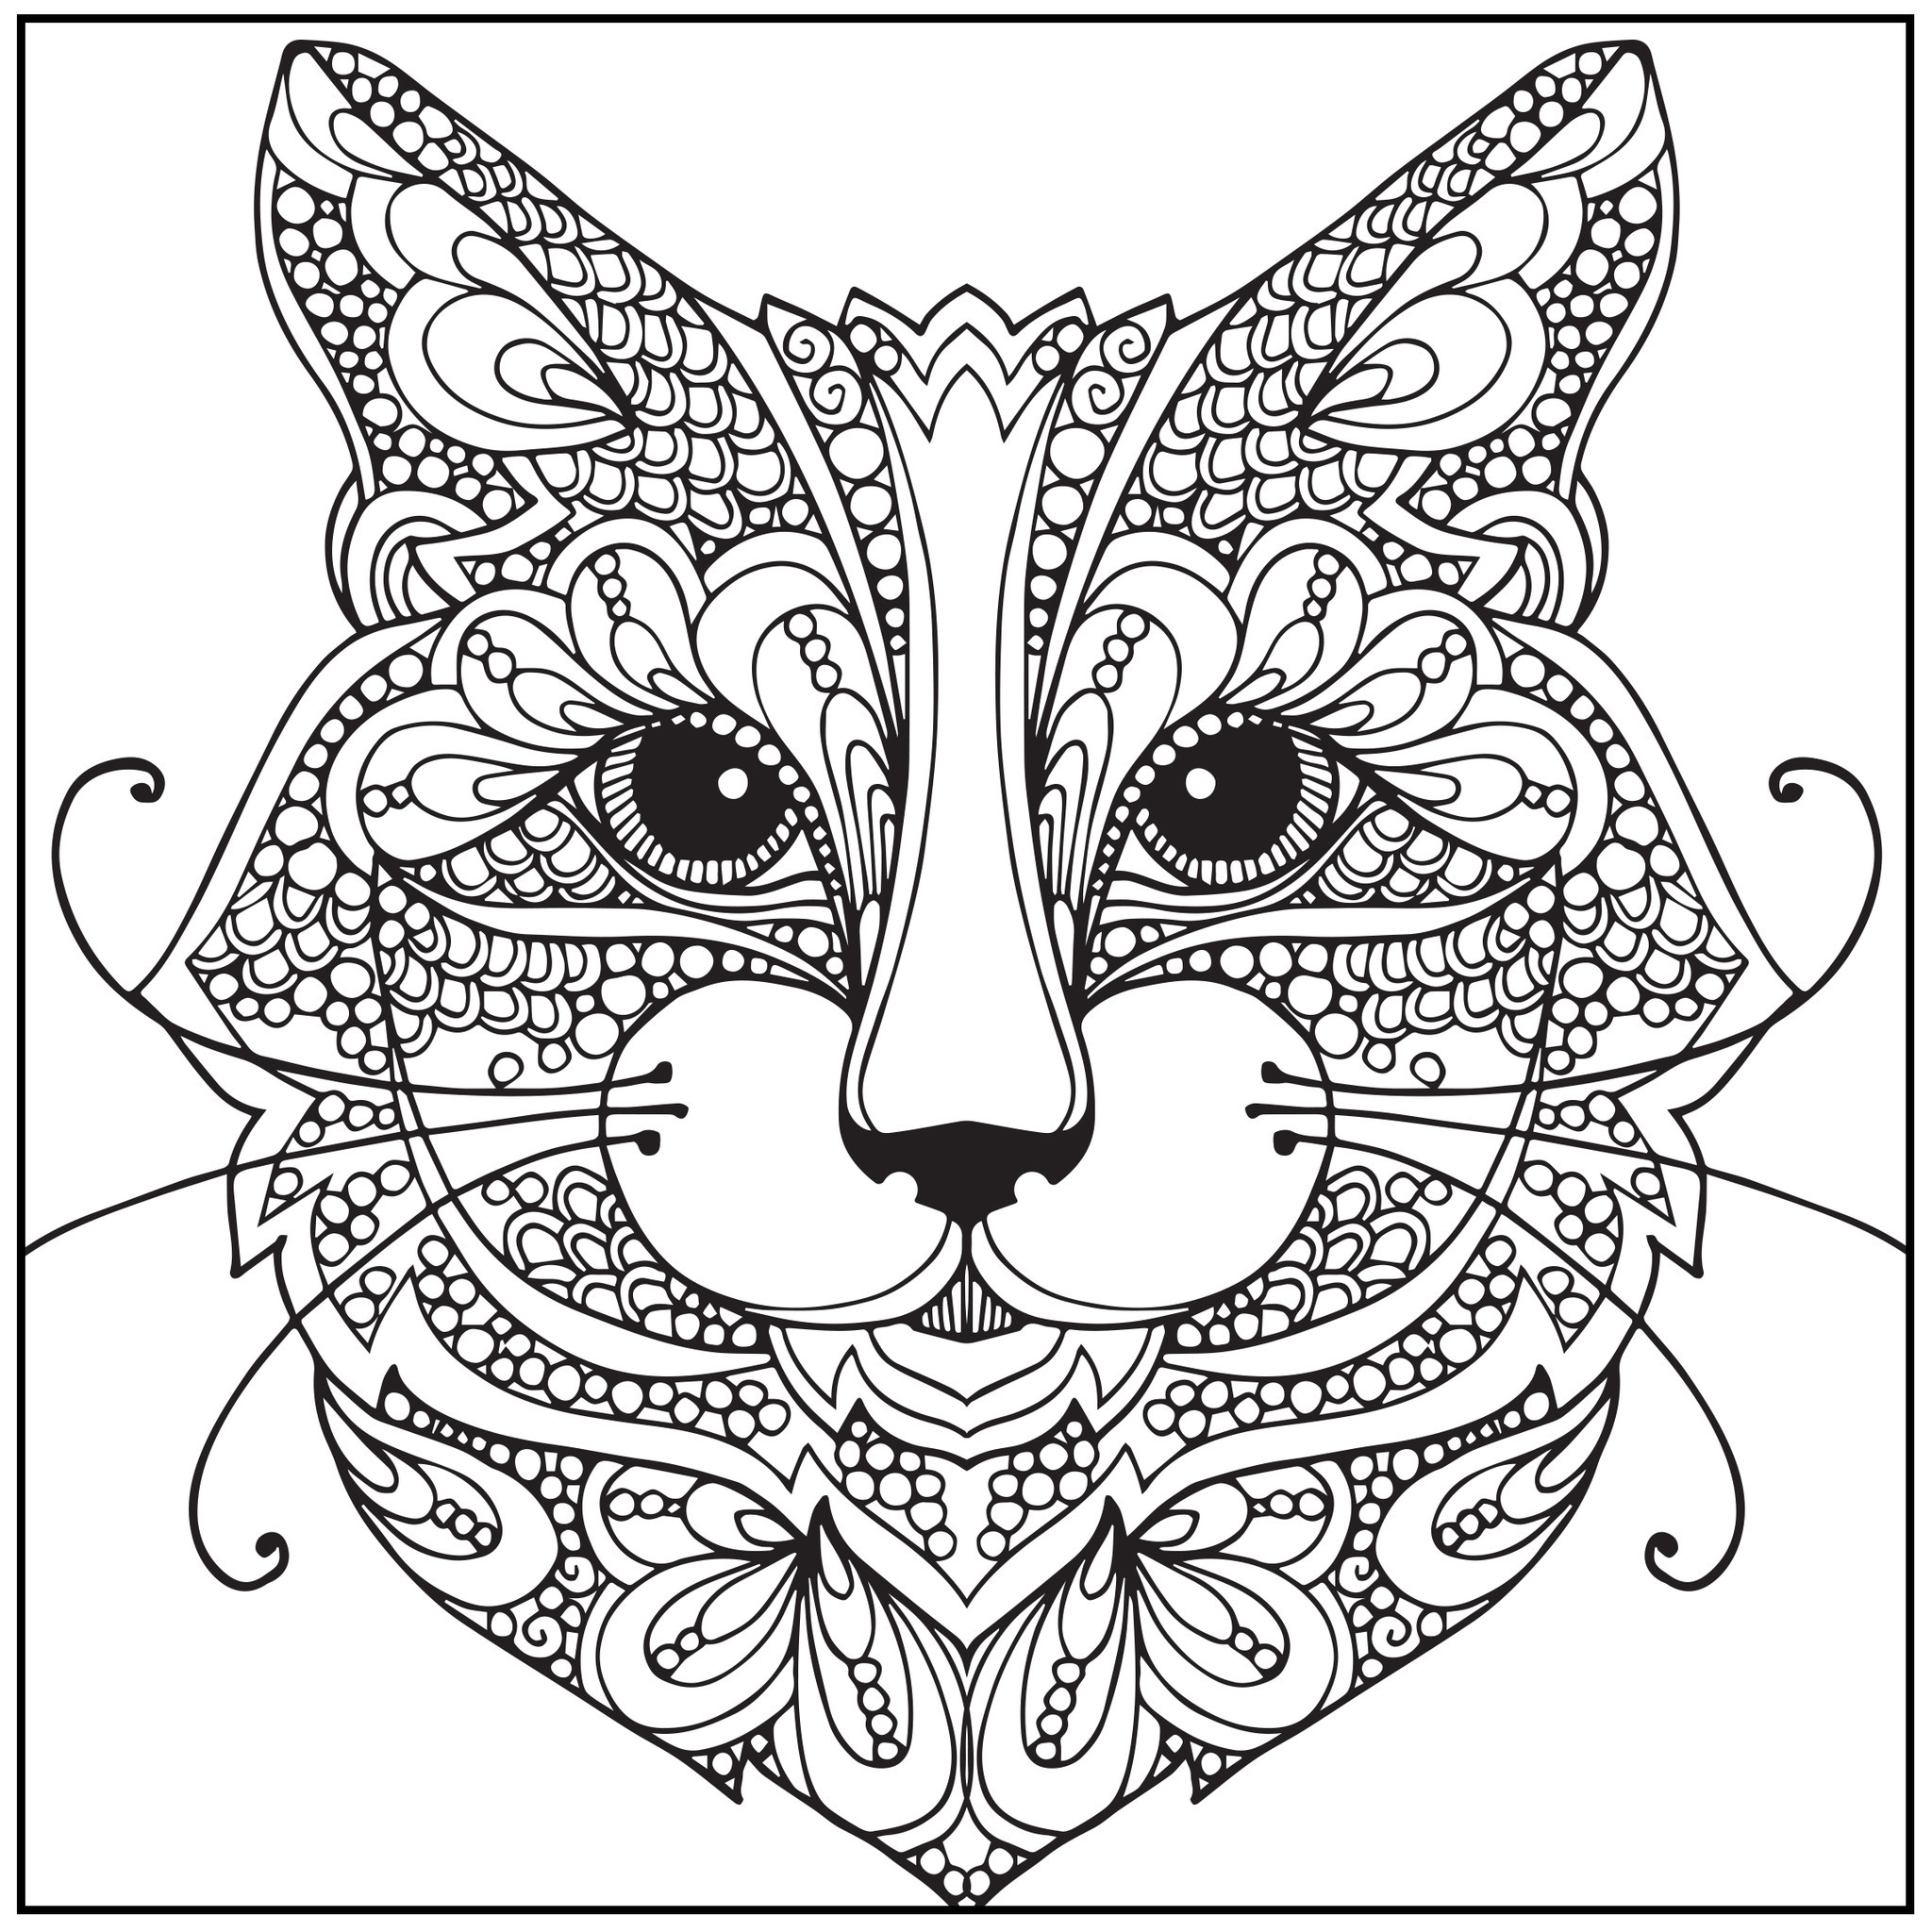 2048x2048 Absolutely Design Cat Coloring Pages For Adults To Print Printable